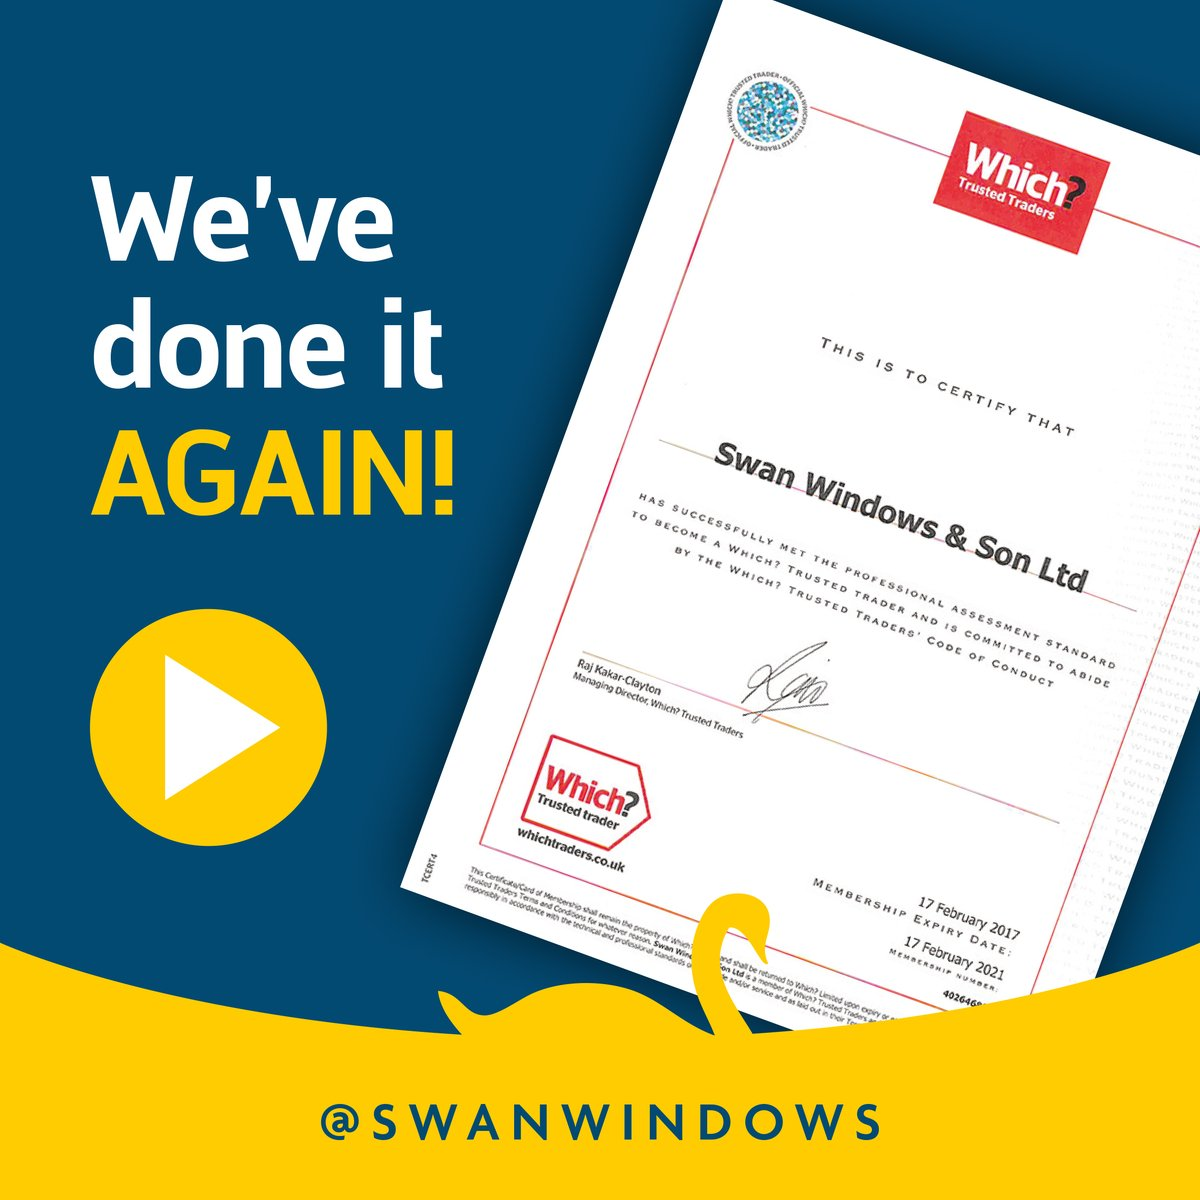 We're delighted to have been awarded the Which? Trusted Trader certificate for another year.   #windows #homeimprovement #rickmansworth #ricky #newhome #construction #conservatory #hertfordshire #sashwindows #which? #trustedtrader #which?trustedtrader